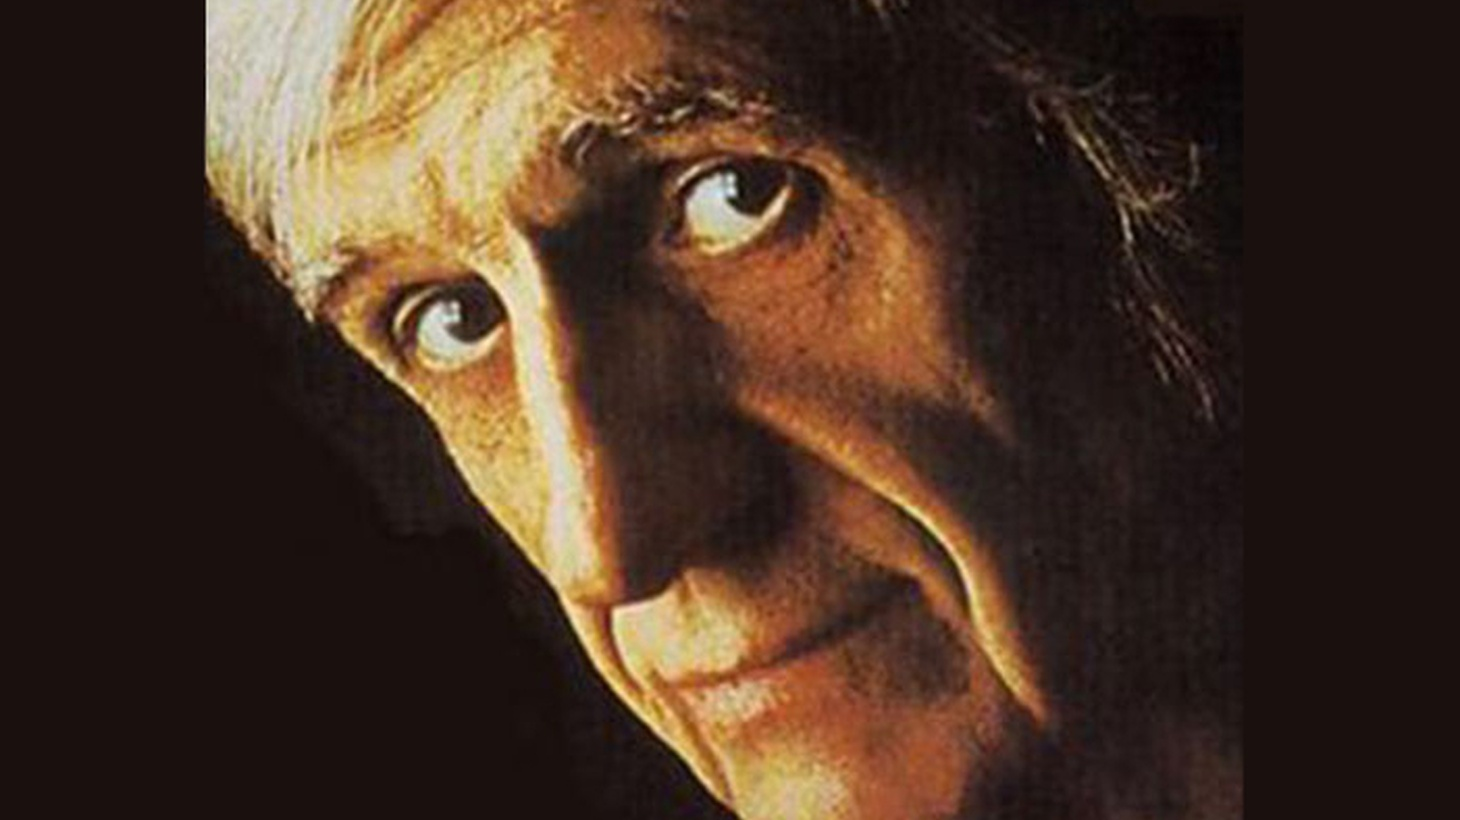 This week on Rhythm Planet, Tom features some of his most beloved works by Gil Evans, including collaborations with Miles Davis, Astrud Gilberto, Cecil Taylor and Wayne Shorter, as well as newer arrangements of his works by Maria Schneider Orchestra and Ryan Truesdell.